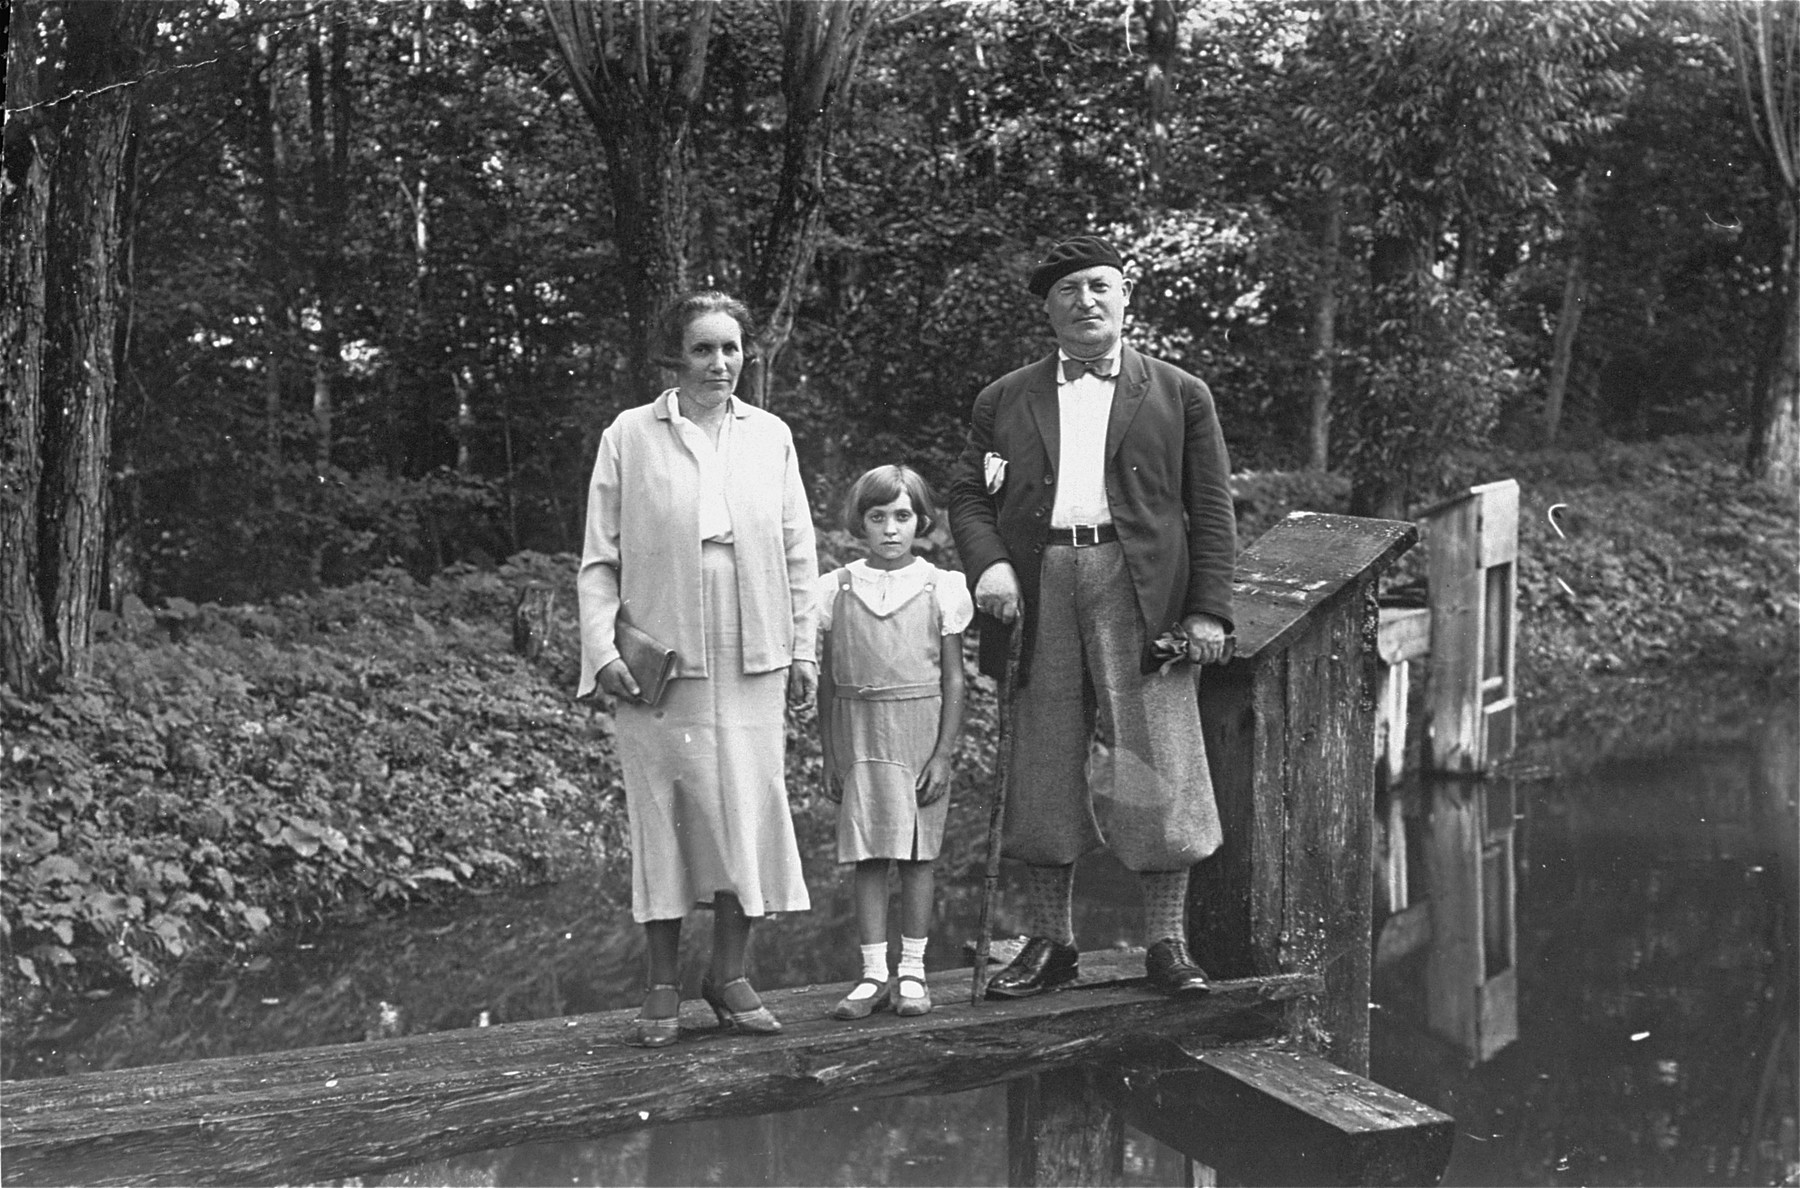 Jewish opera singer, Leo Kaplan, poses with his wife and daughter in a park.  Kaplan performed with the Berlin opera in the interwar period.  He was the cousin of the donor's father.